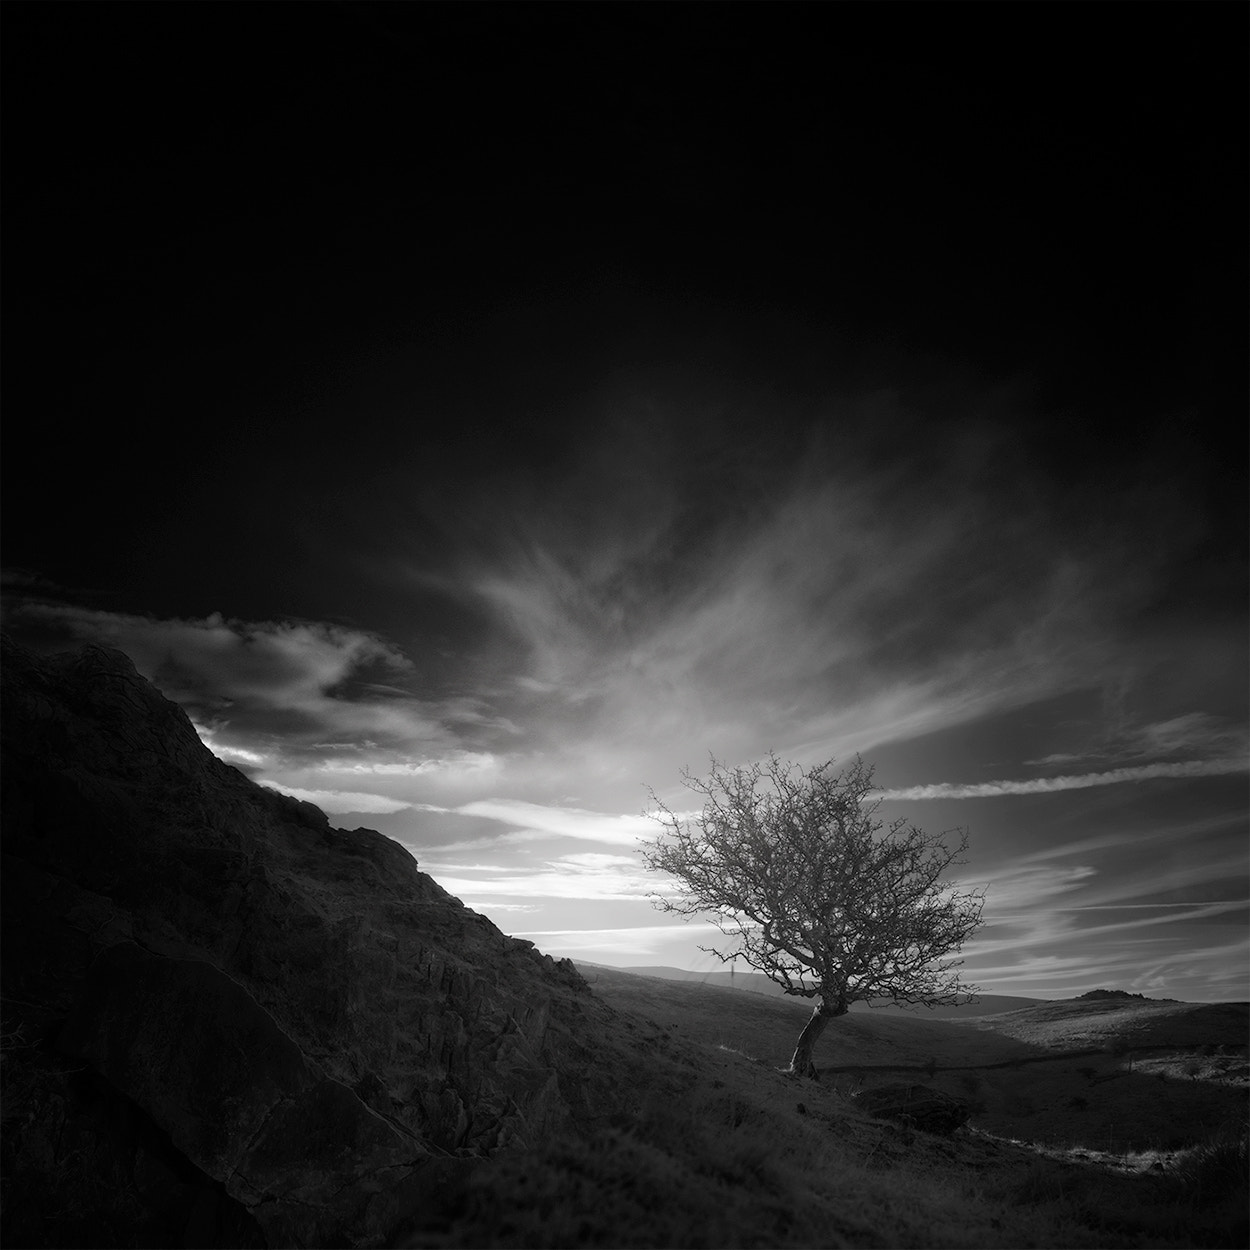 Photograph ѱ out of darkness comes creation by Andy Lee on 500px